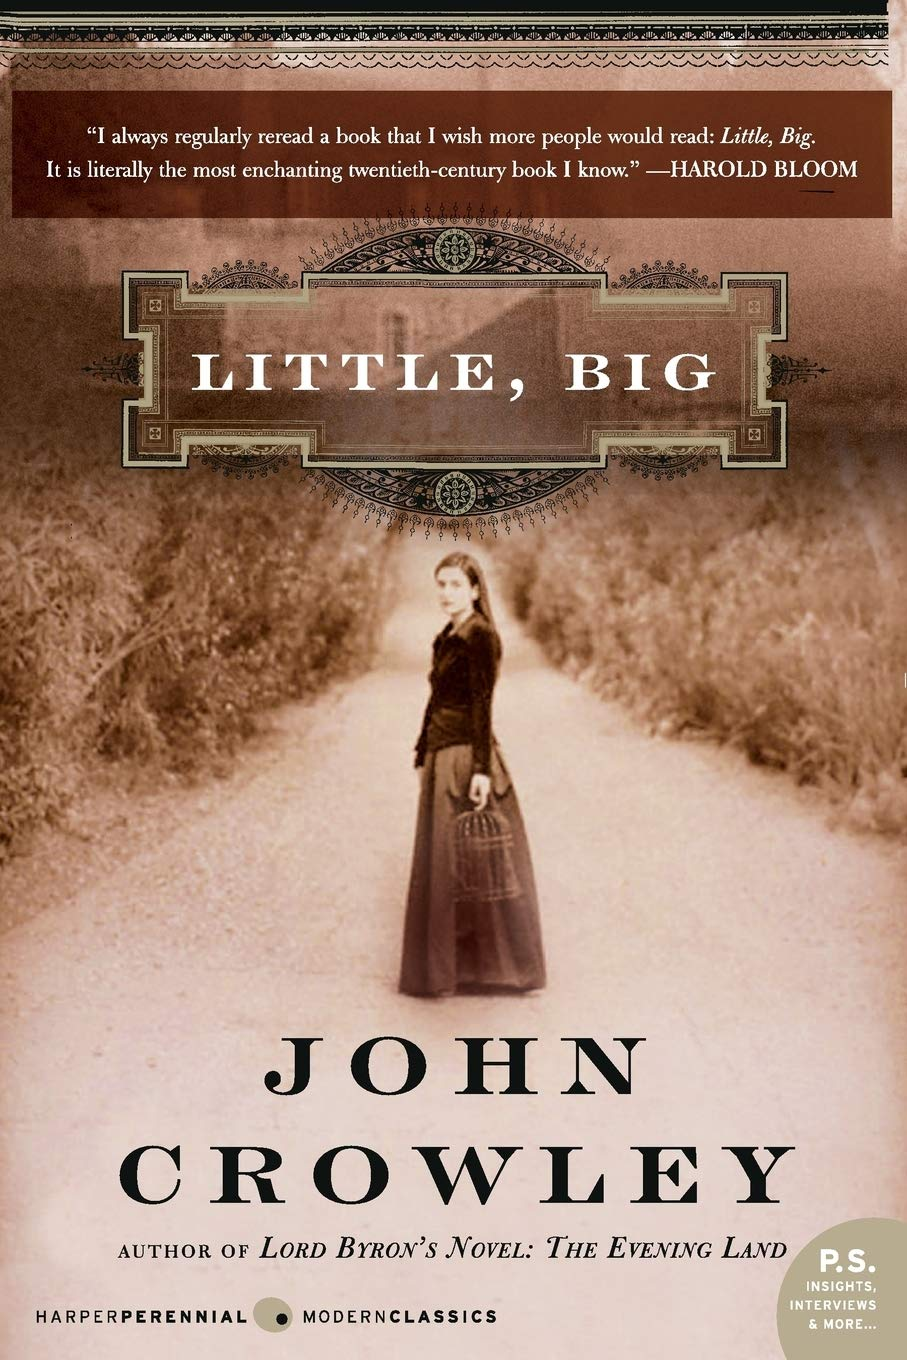 John Crowley - Little, Big